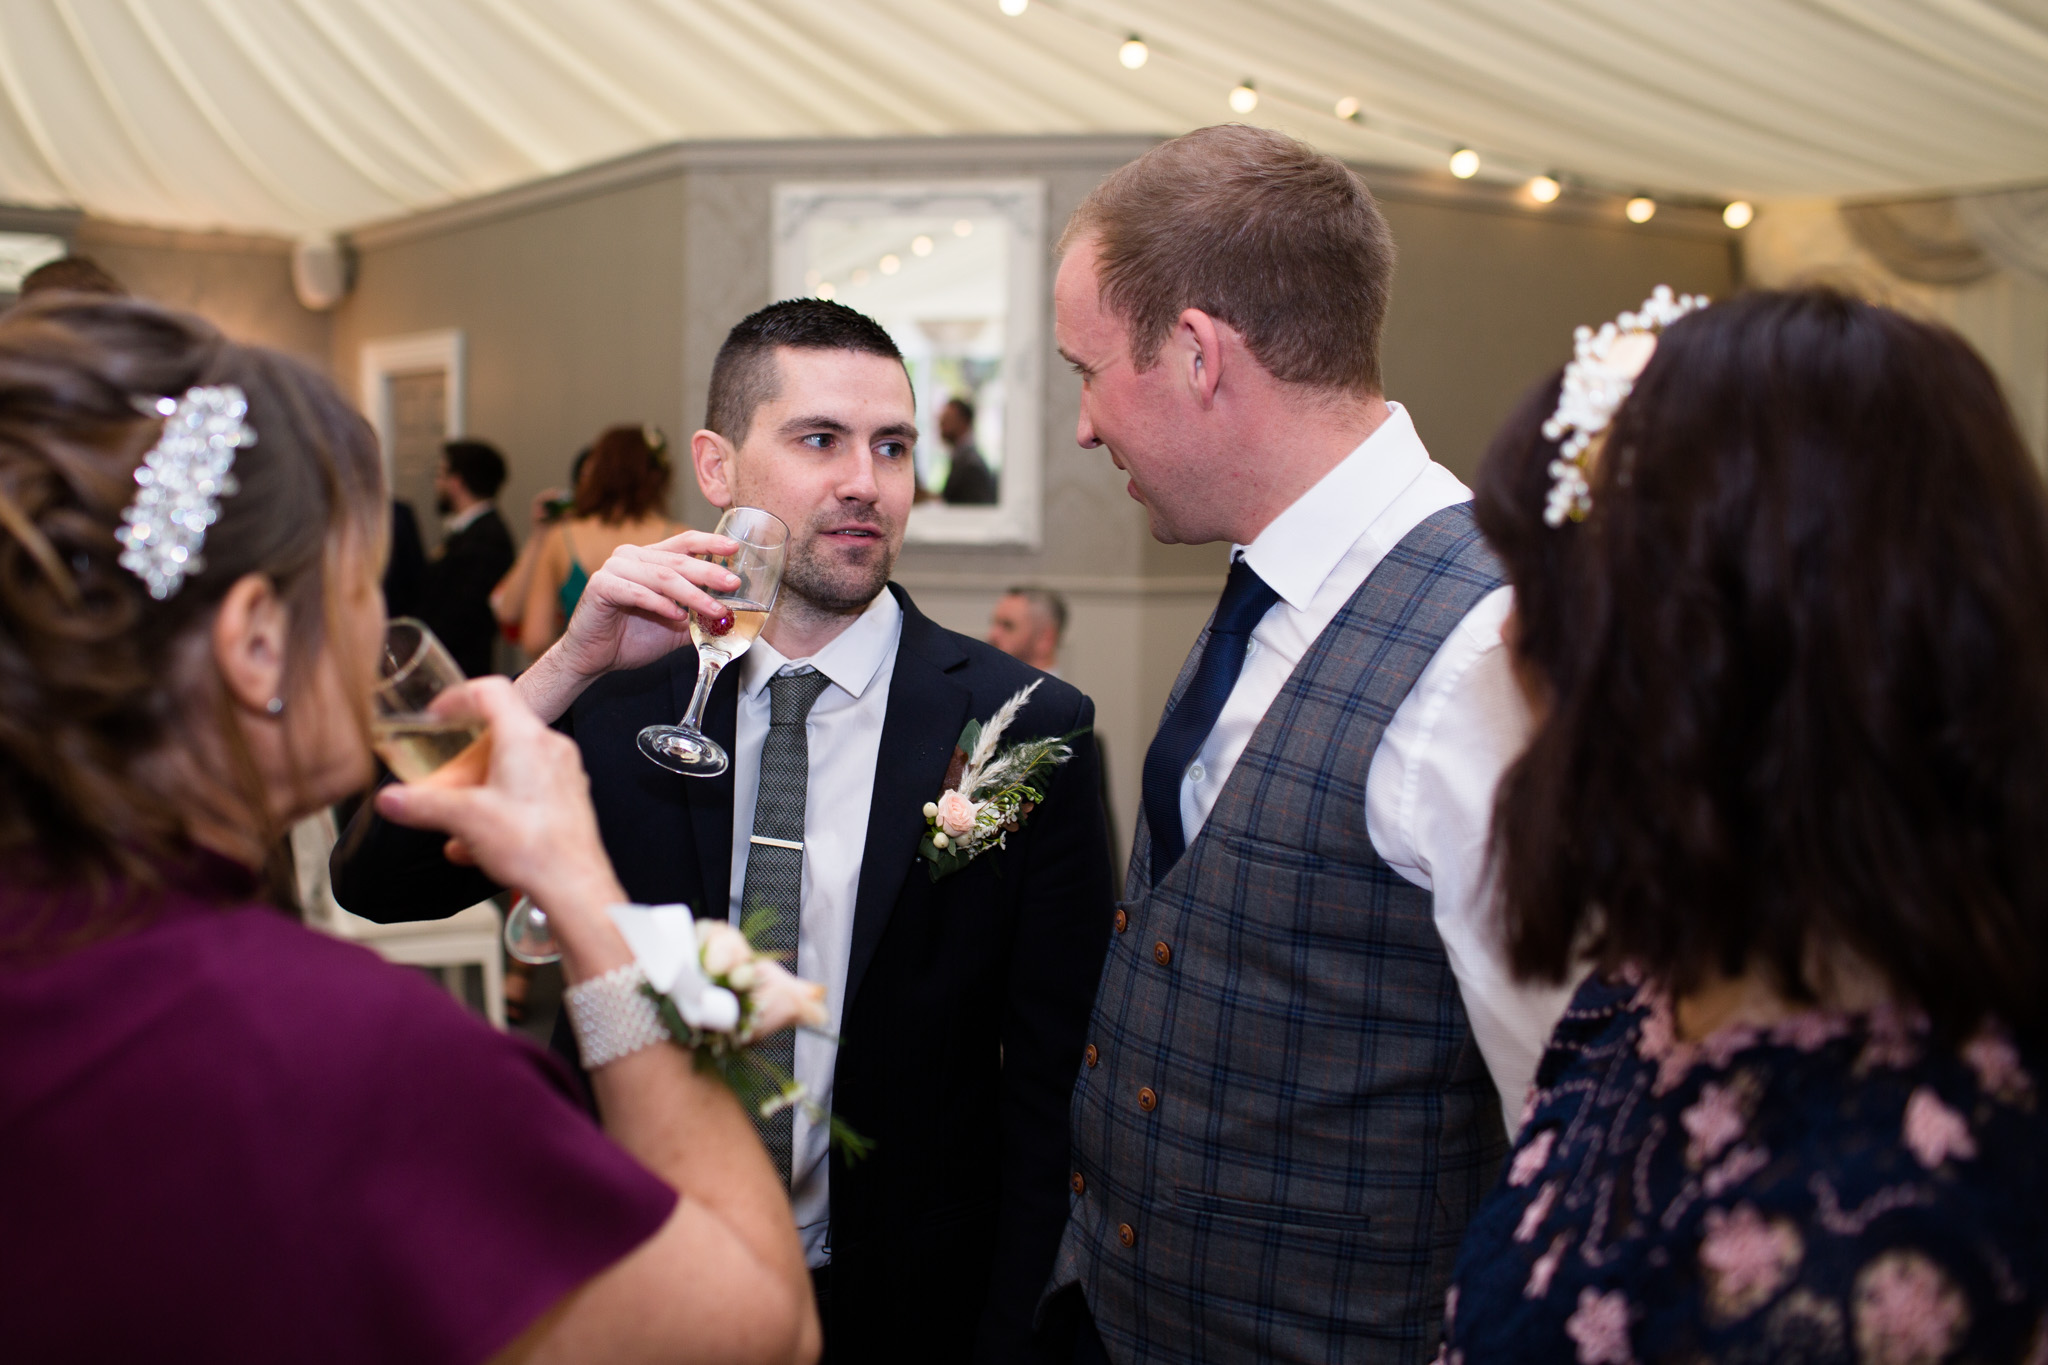 Mark_Barnes_Northern_Ireland_Wedding_Photography_Ballyscullion_Park_Wedding_Photography_Stef&Bobby-40.jpg